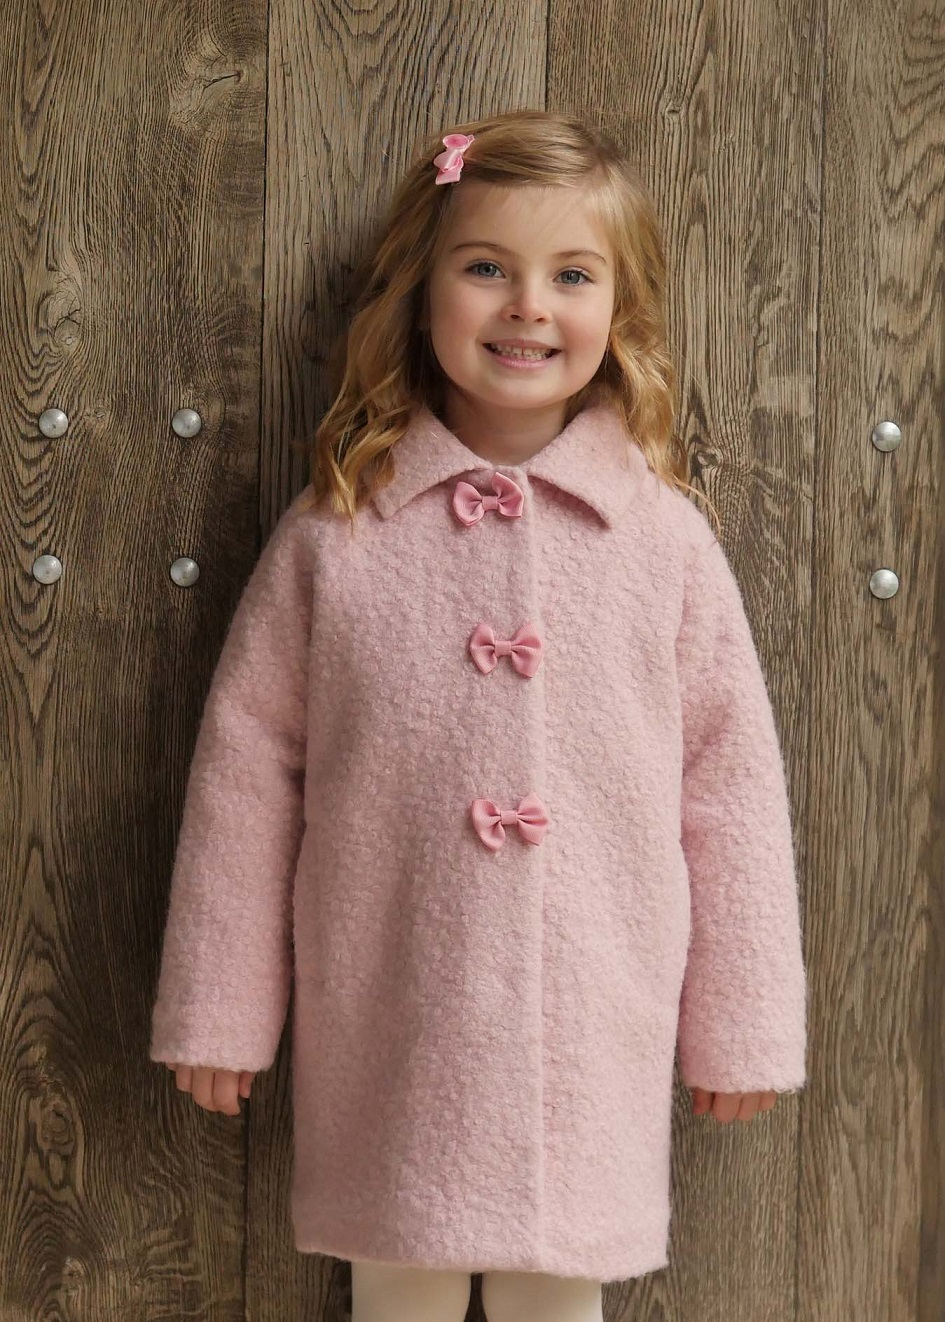 Rachel Riley AW20, Rachel Riley, Childrenswear, hand-crafted clothes, vintage designs, luxury children's clothing, Back To School, Giveaway, Win, the Frenchie Mummy